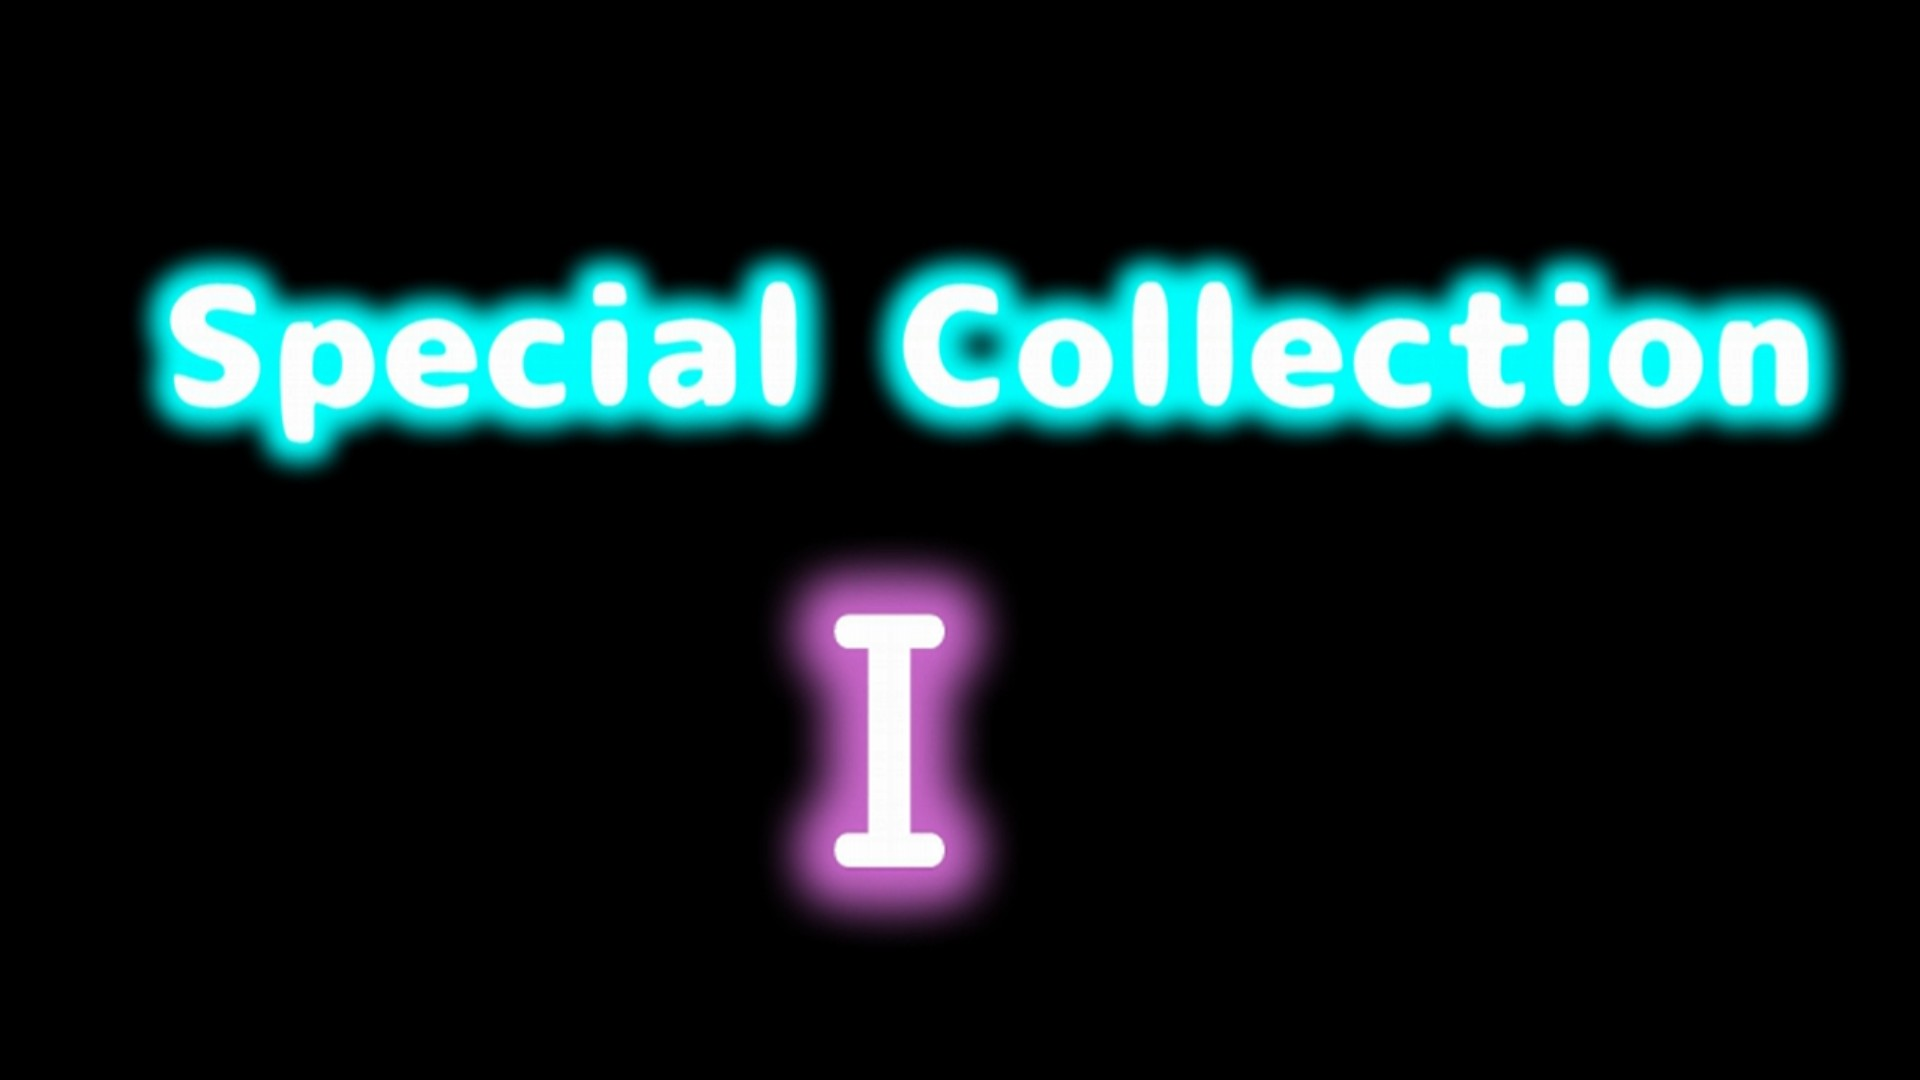 【twitter裏垢女子】Special collection #001【初見の方おススメ】